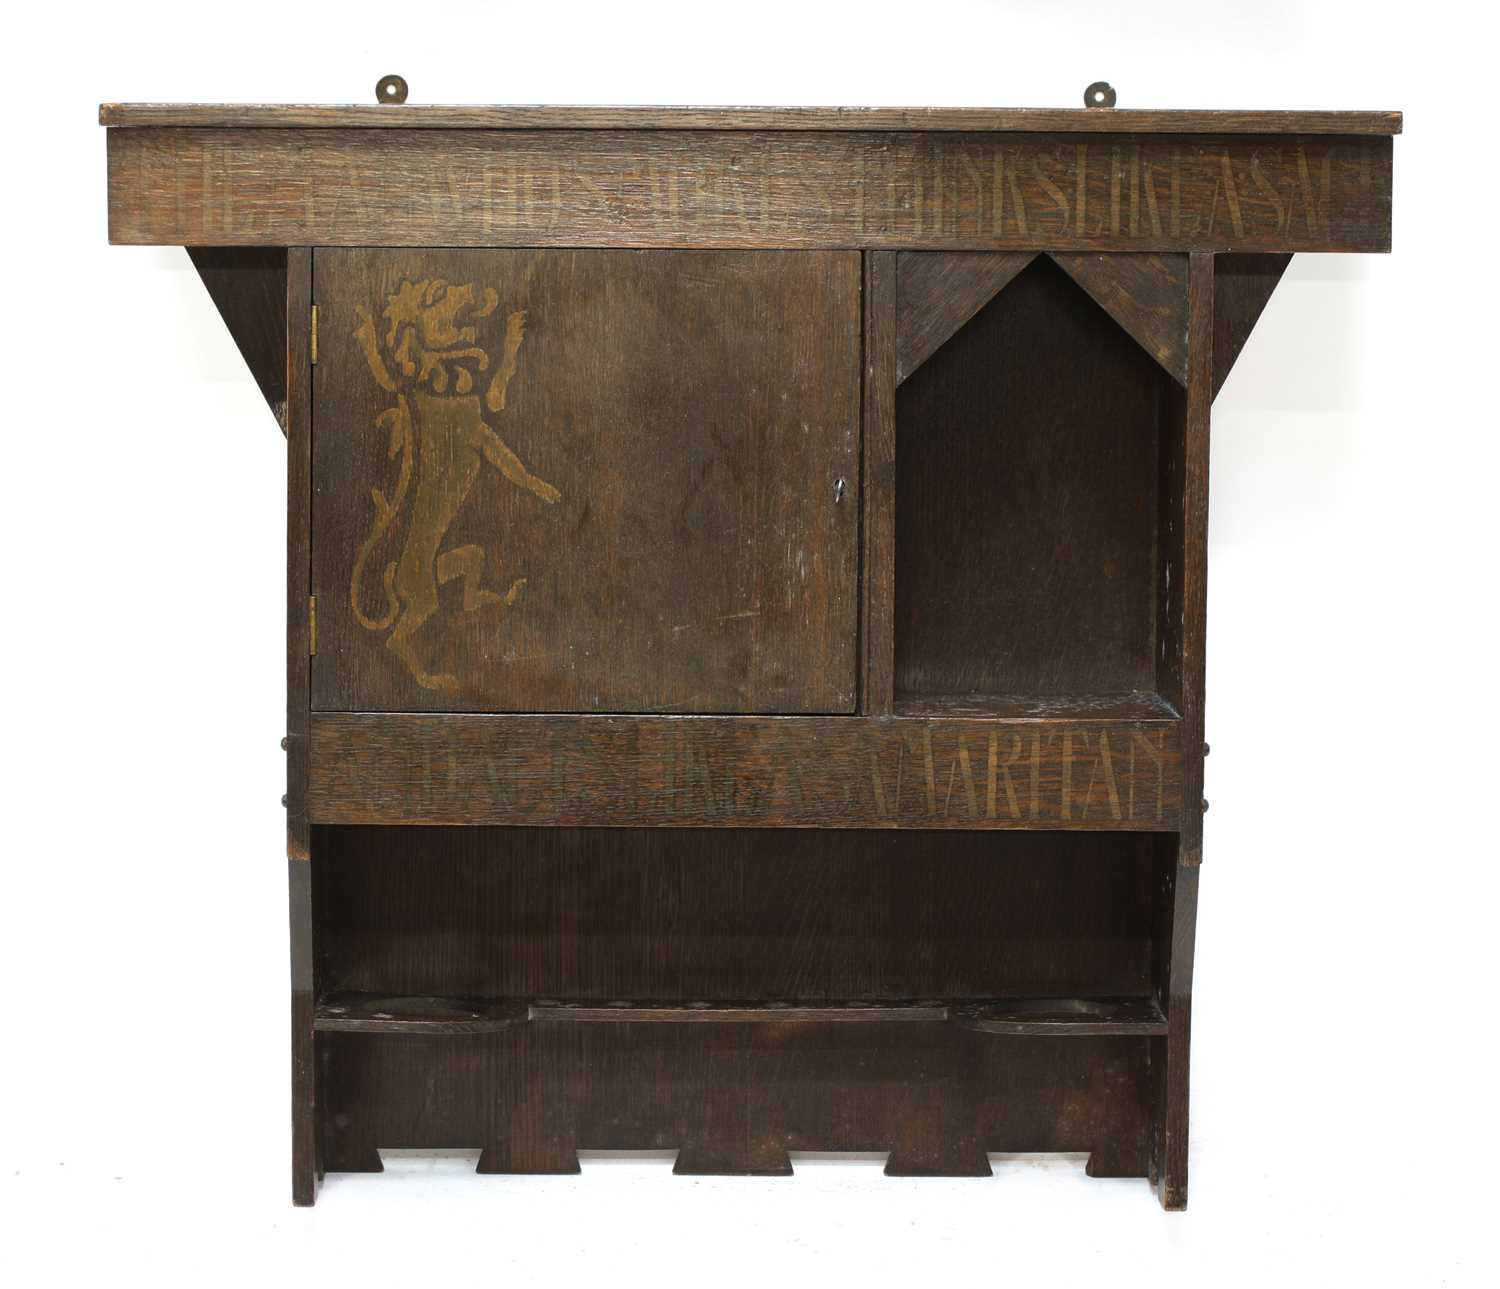 Lot 94 - An Arts and Crafts hanging smoker's cabinet